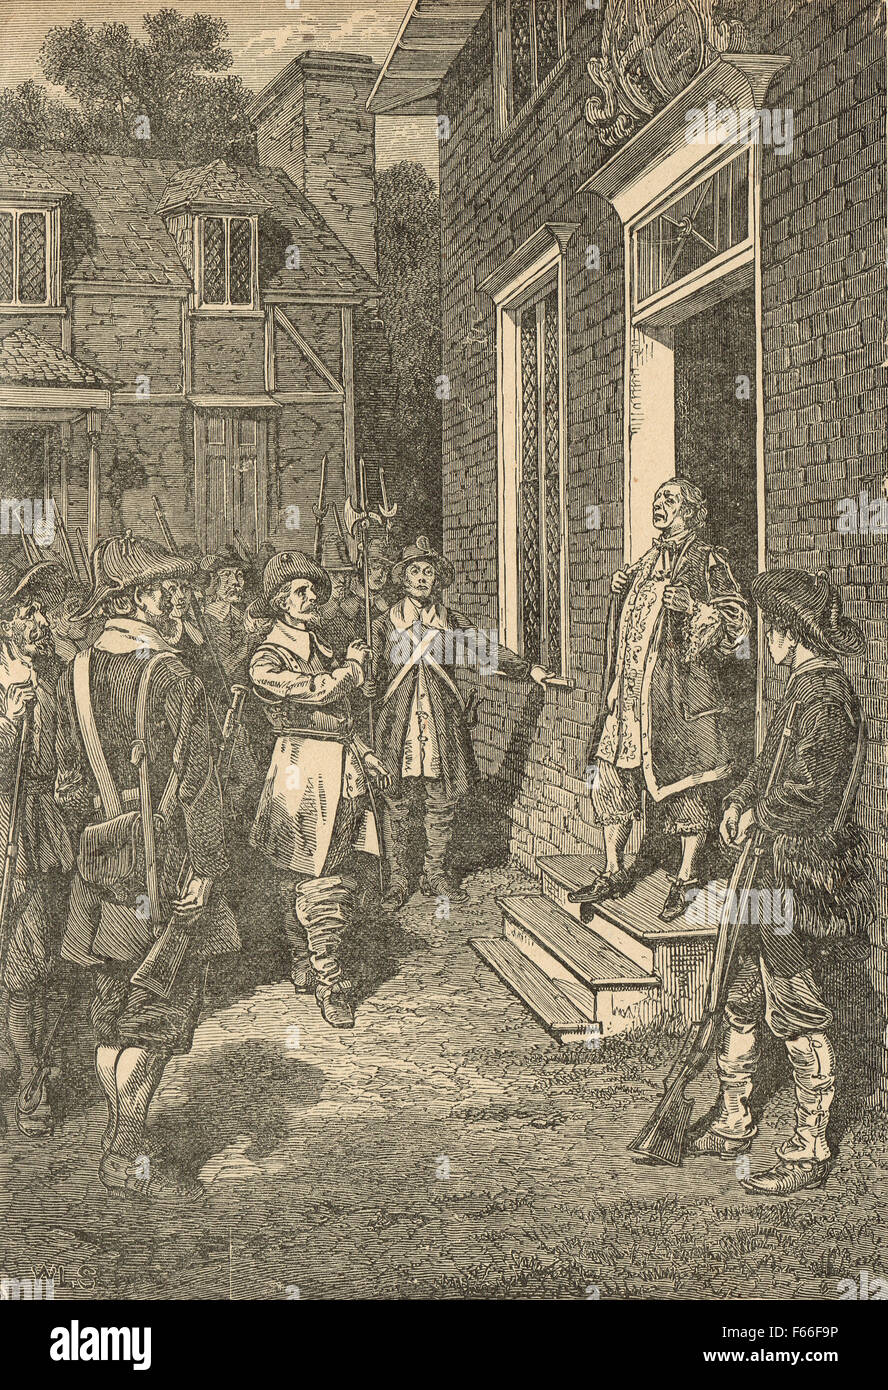 Bacon's rebellion Virginia colony 1676 Stock Photo